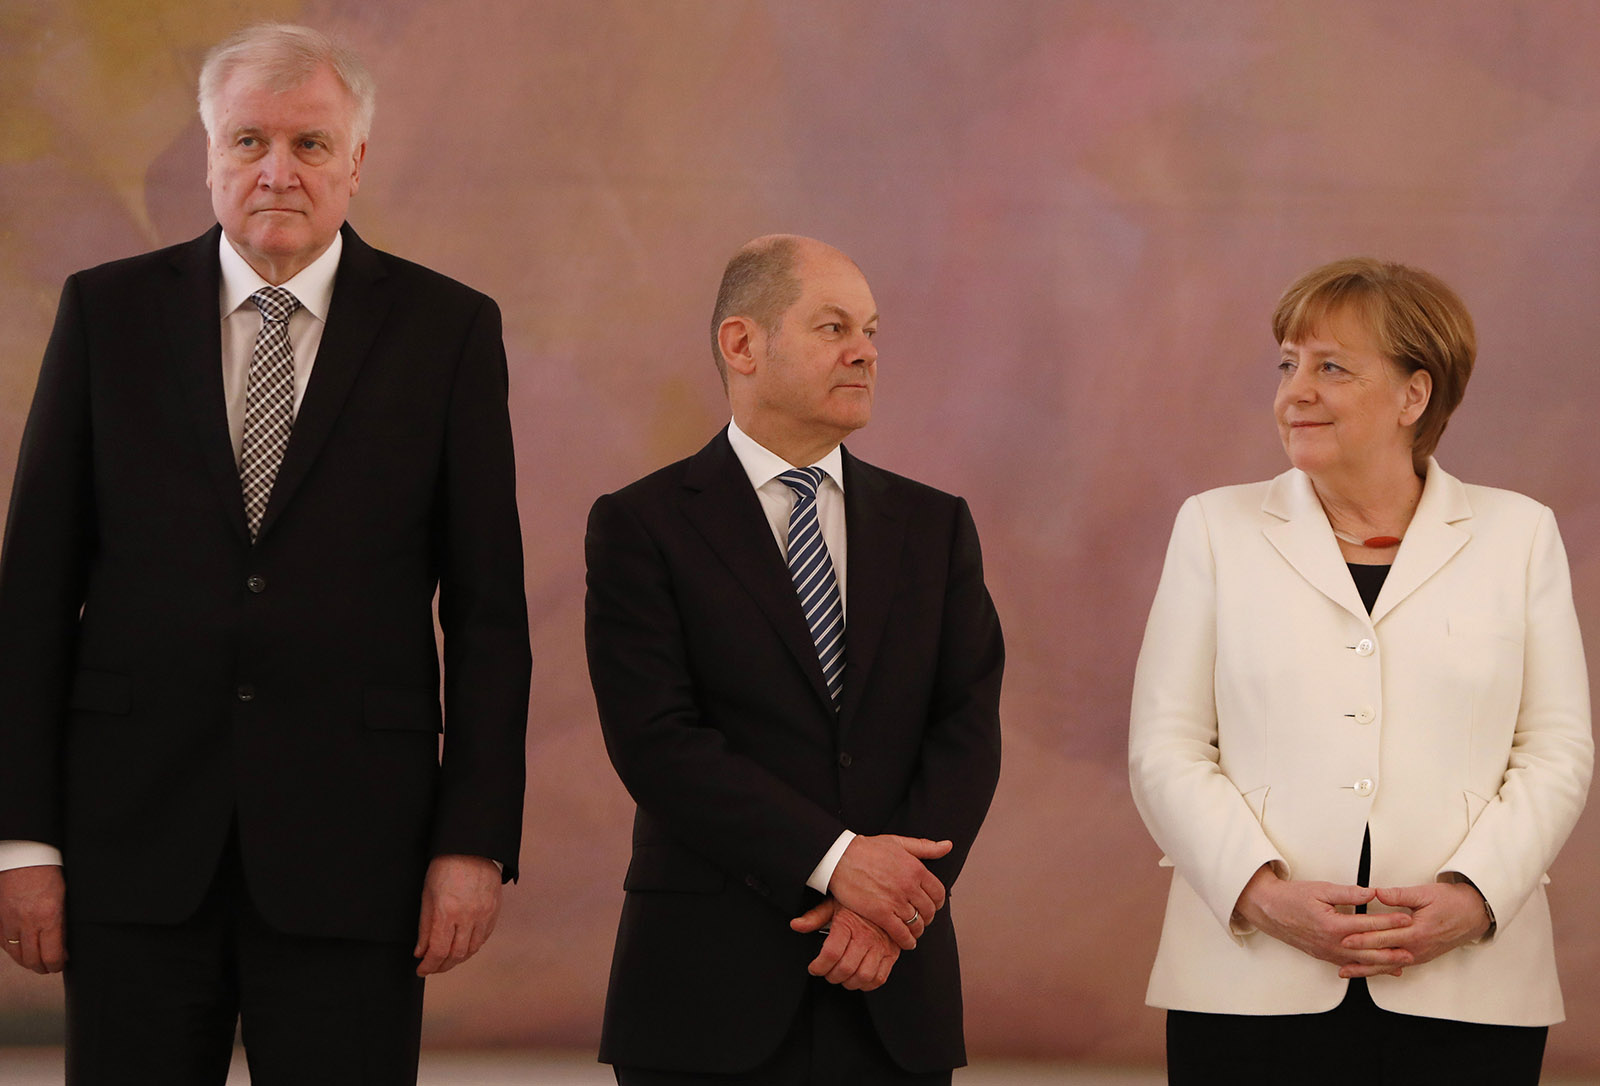 Interior Minister Horst Seehofer and Chancellor Angela Merkel flanking Vice Chancellor Olaf Scholz at the formation of Germany's new coalition government, Berlin, March 14, 2018